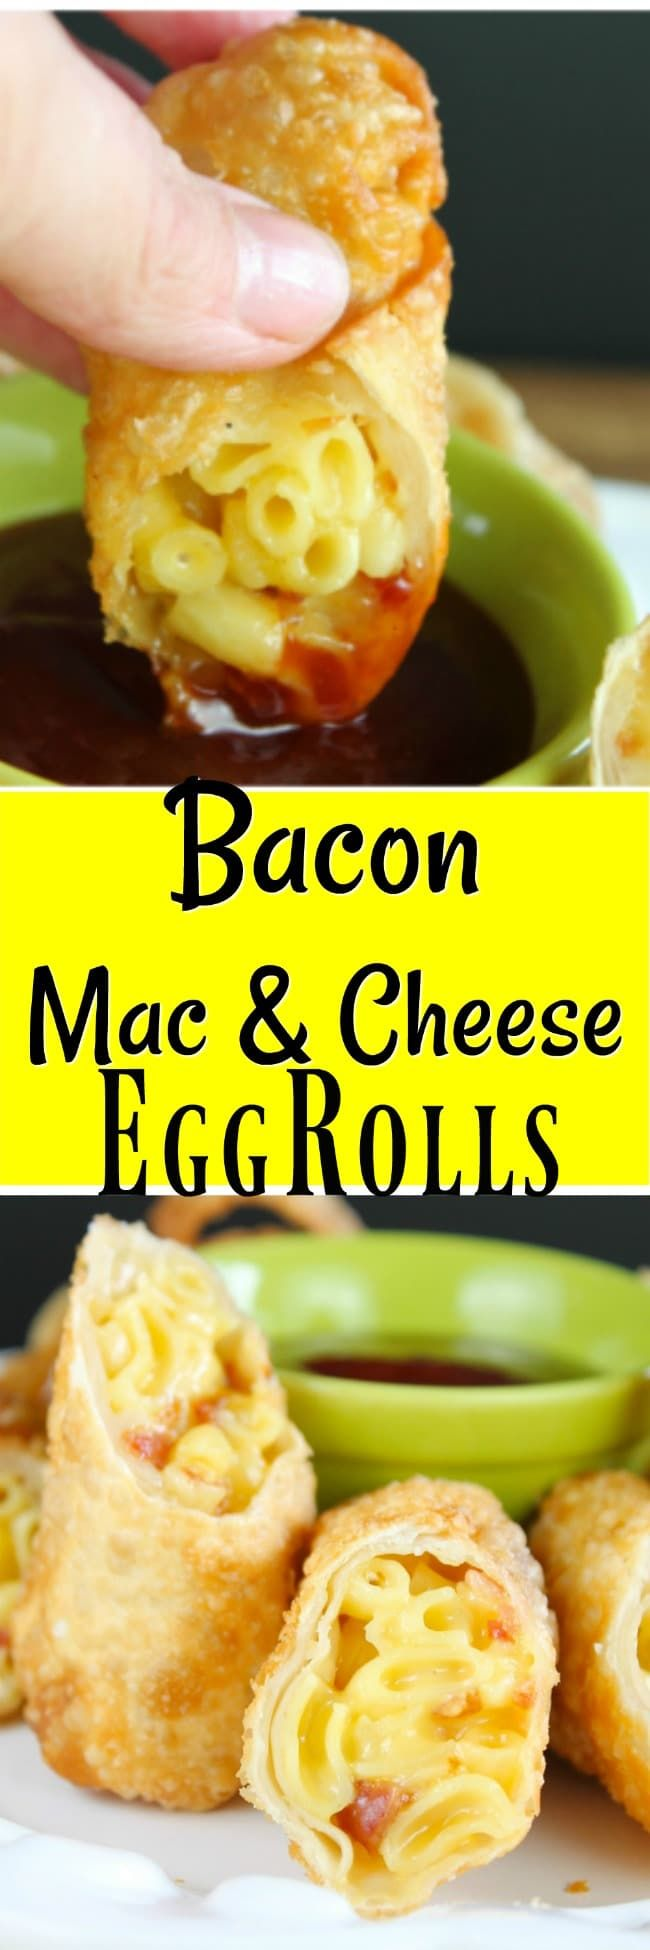 Bacon Mac & Cheese Egg Rolls Recipe ~ Amazing Appetizer for game day or any party!